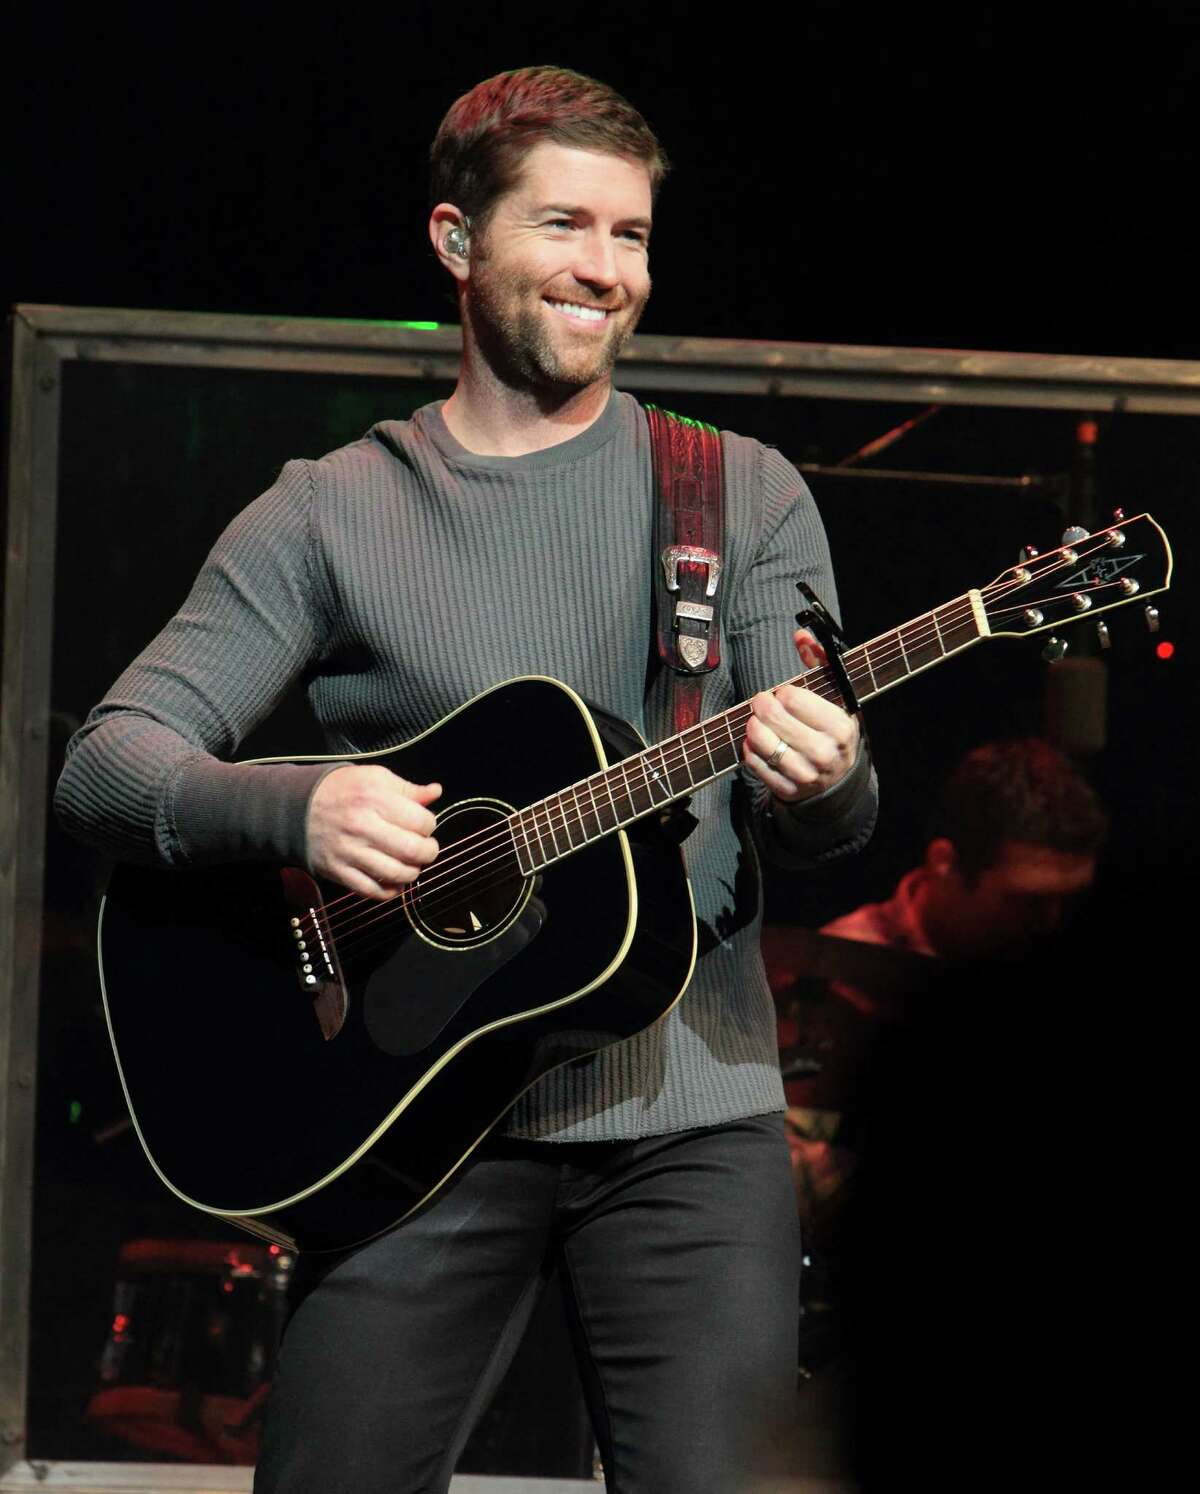 """Country music artist Josh Turner performs in concert during his """"Punching Bag Tour 2014"""" at the American Music Theater on Monday, Jan. 20, 2014, in Lancaster, Pa. (Photo by Owen Sweeney/Invision/AP)"""